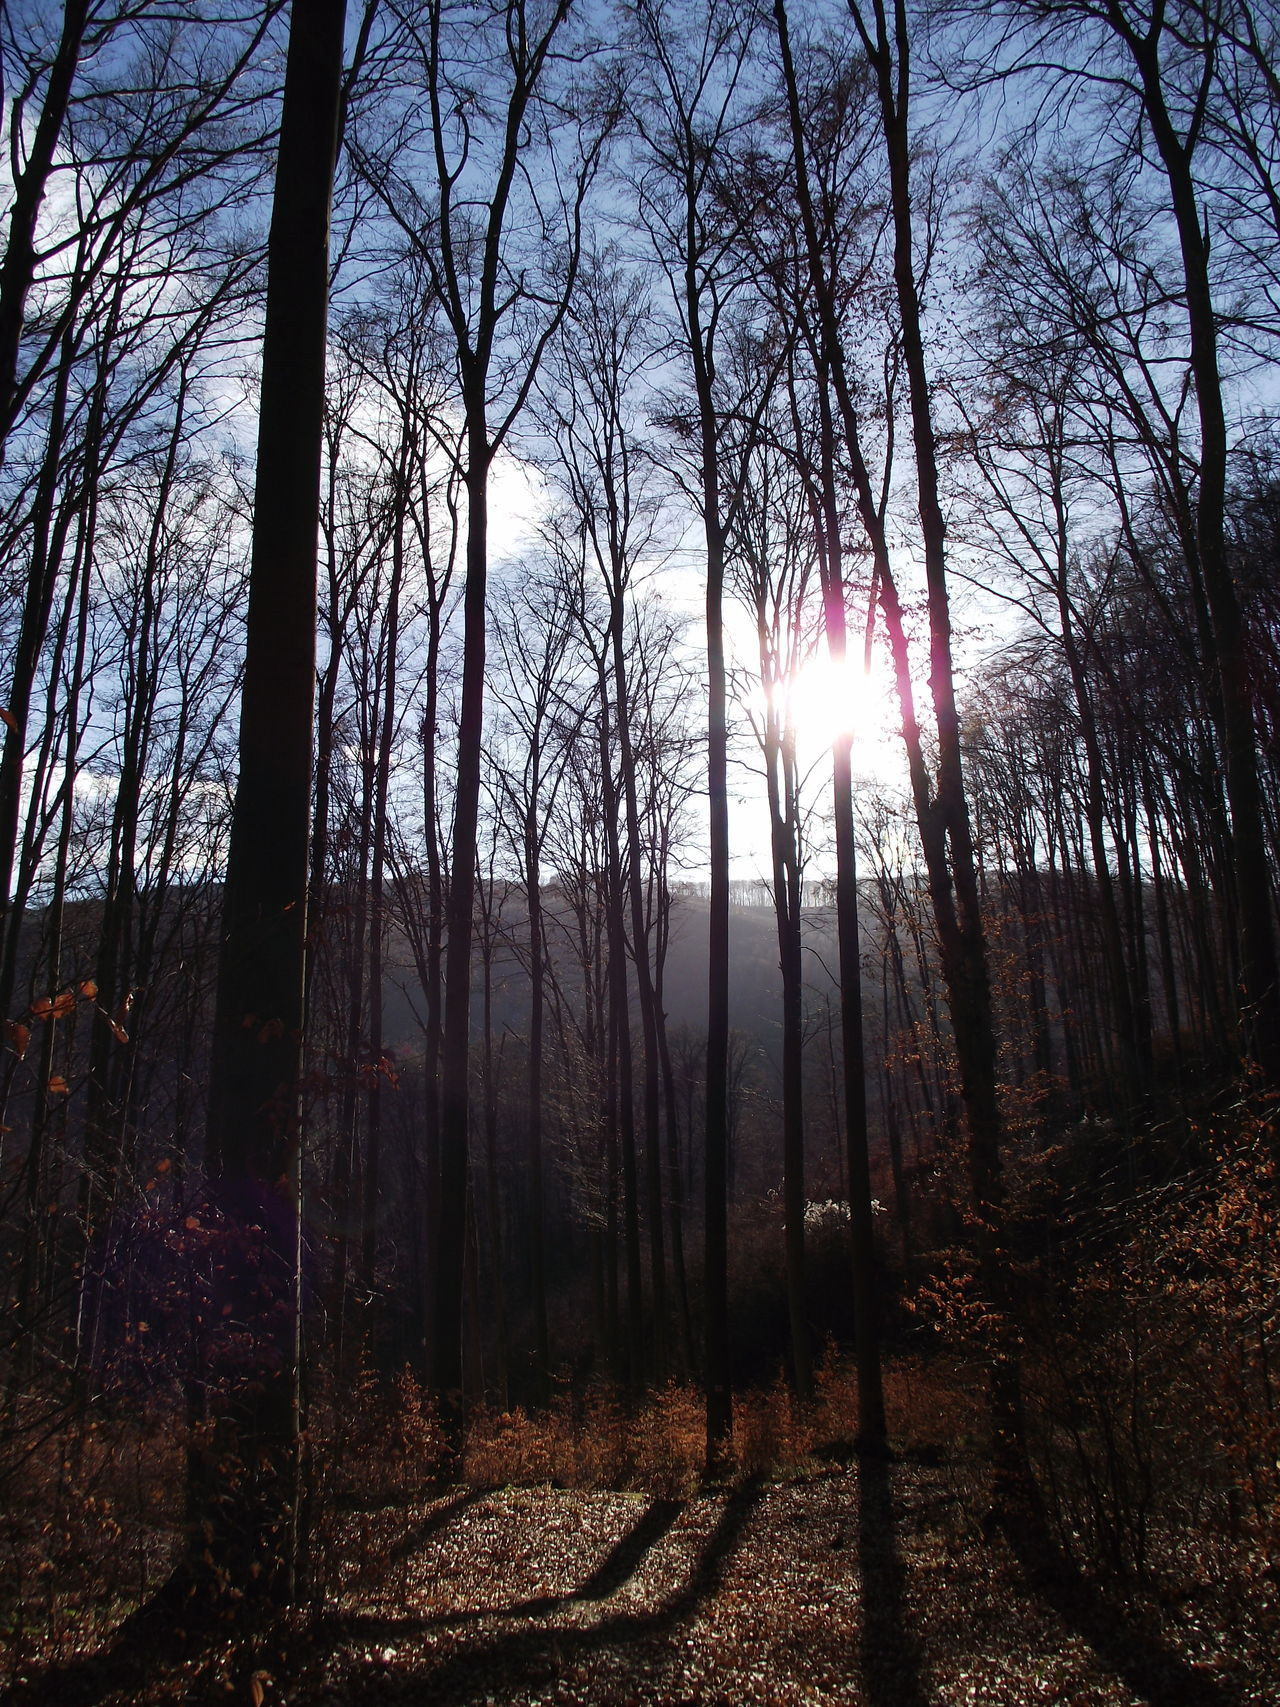 Beauty In Nature Bükk Day Forest Hungary Nature No People Sky Sun Sunlight Tranquility Tree